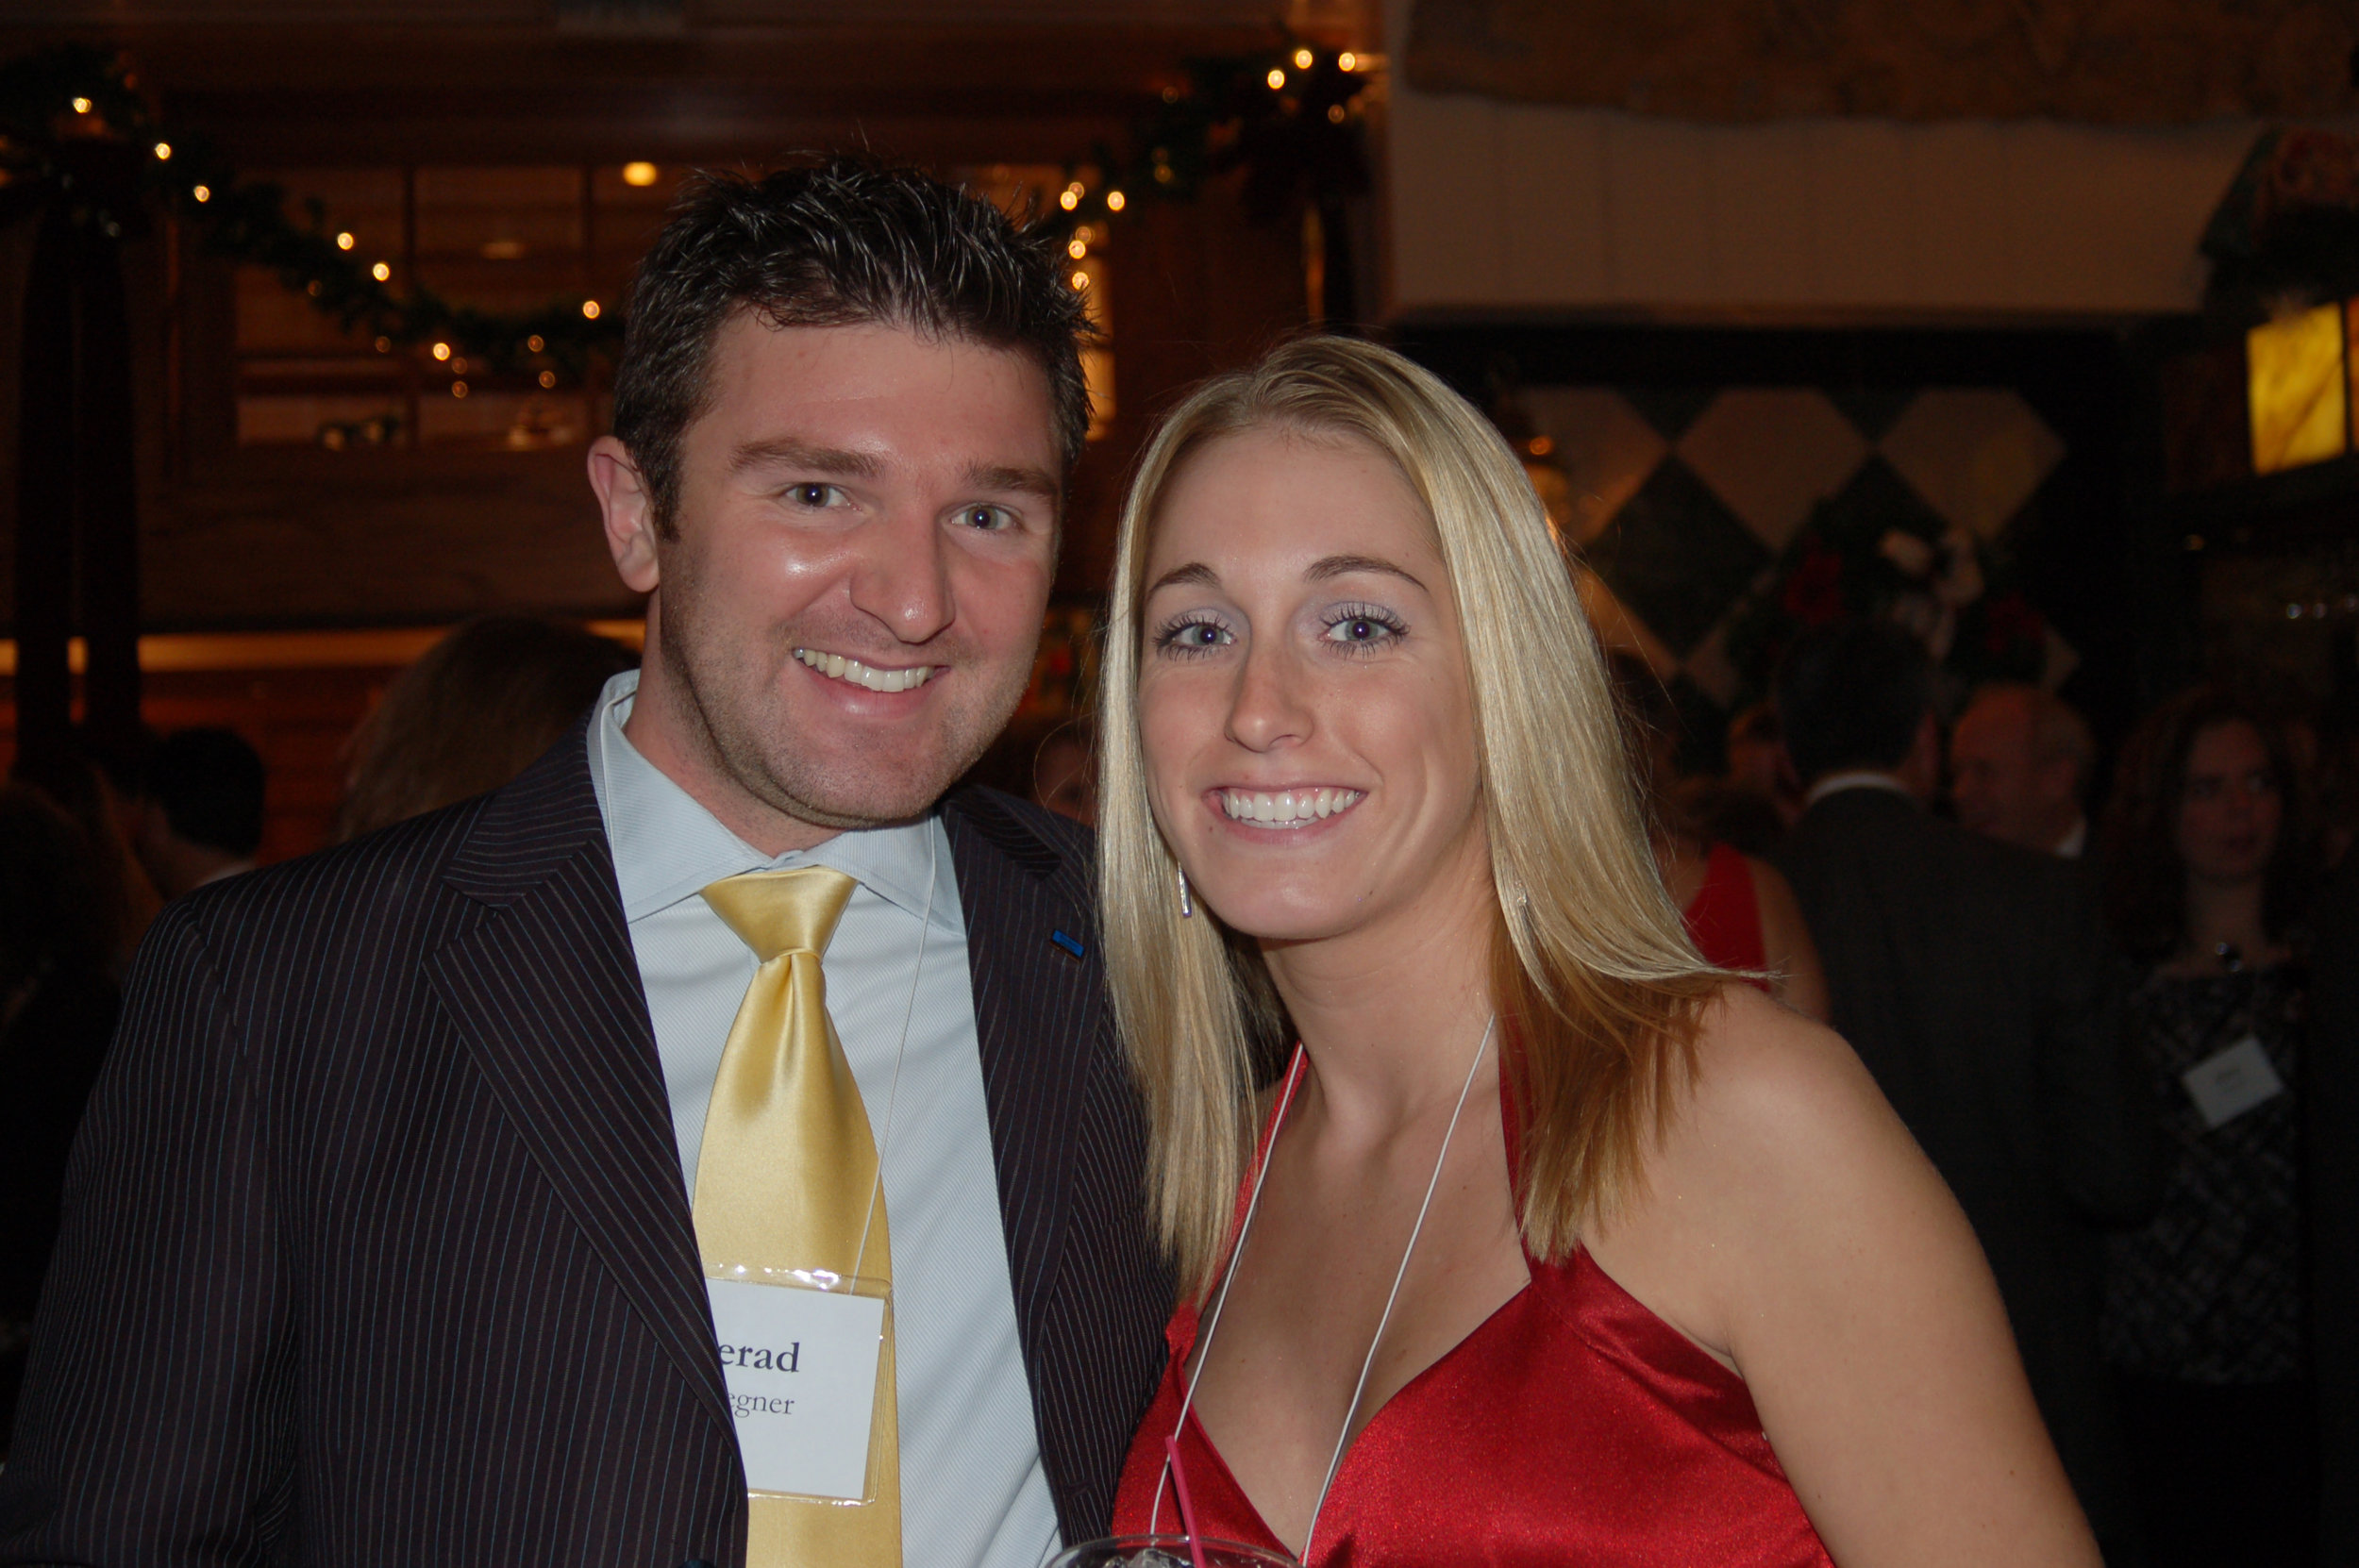 Jerad and his wife Jessica at the 2007 R/M Christmas Party